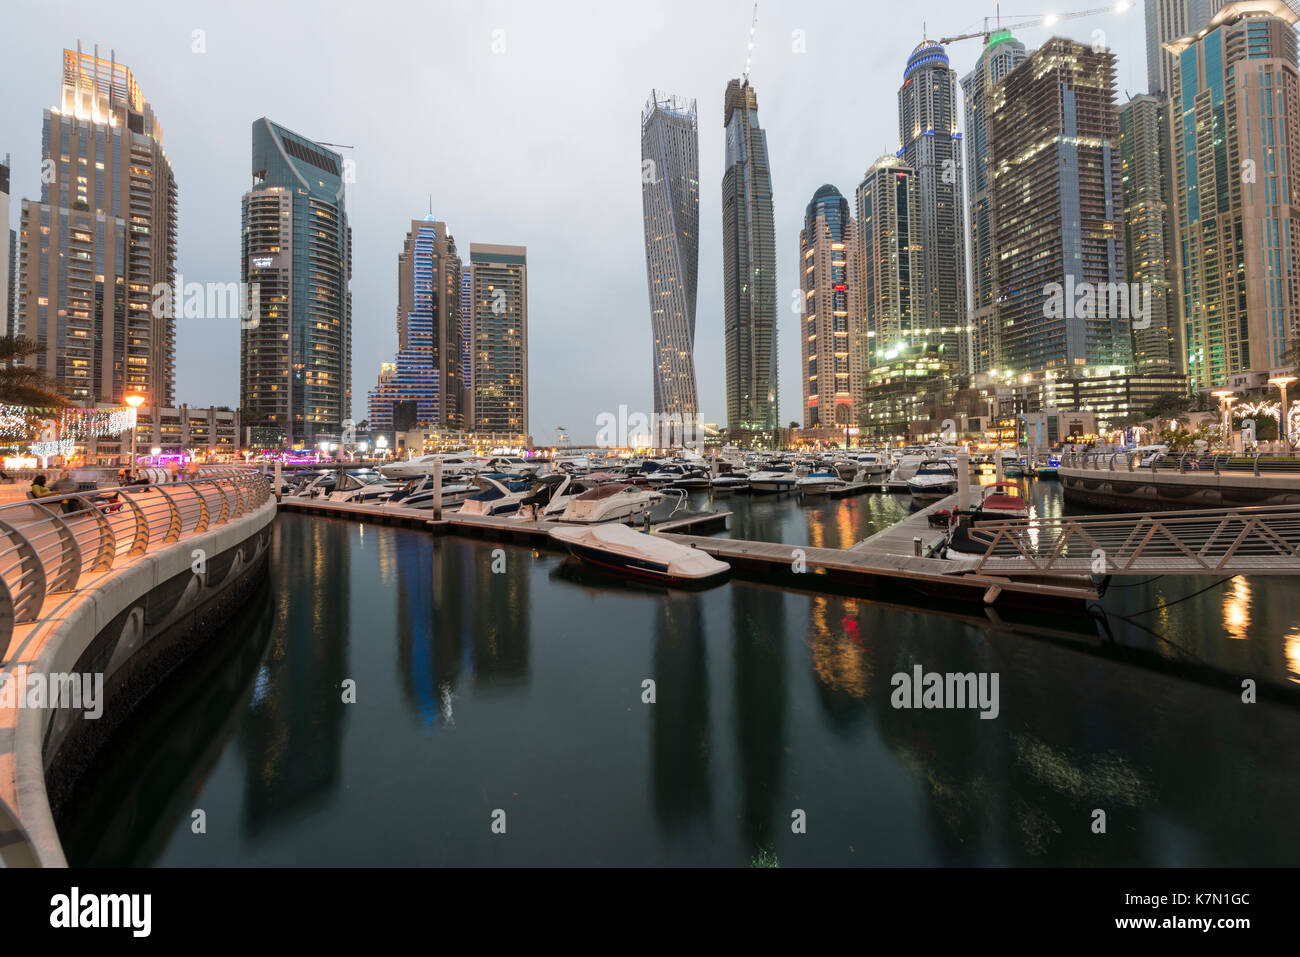 Marina, skyscraper at dusk, Dubai Marina, Dubai, United Arab Emirates - Stock Image